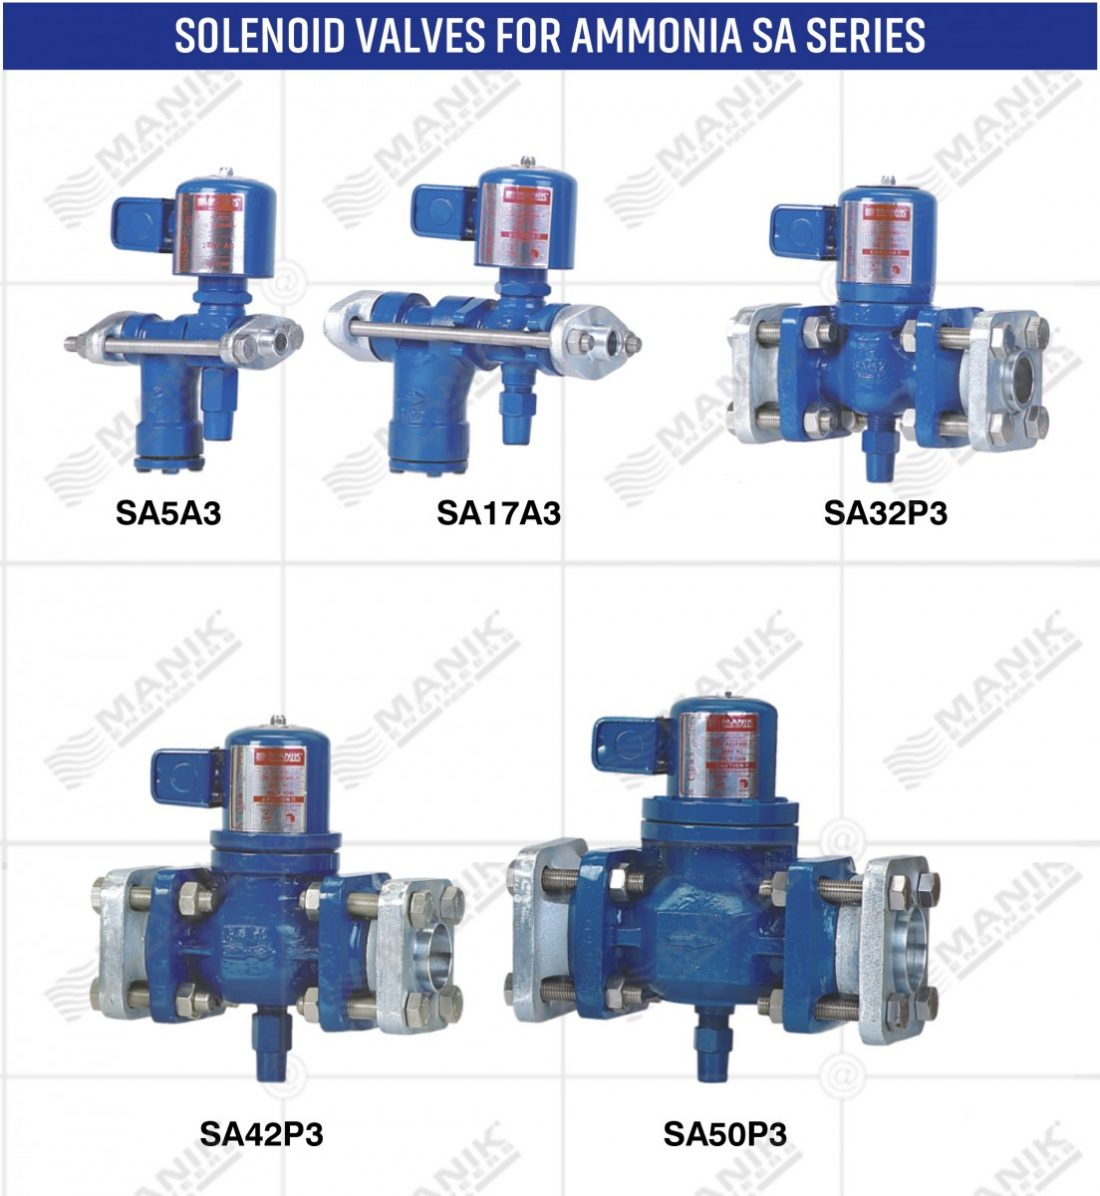 SOLENOID-VALVES-FOR-AMMONIA-SA-SERIES-1100x1196